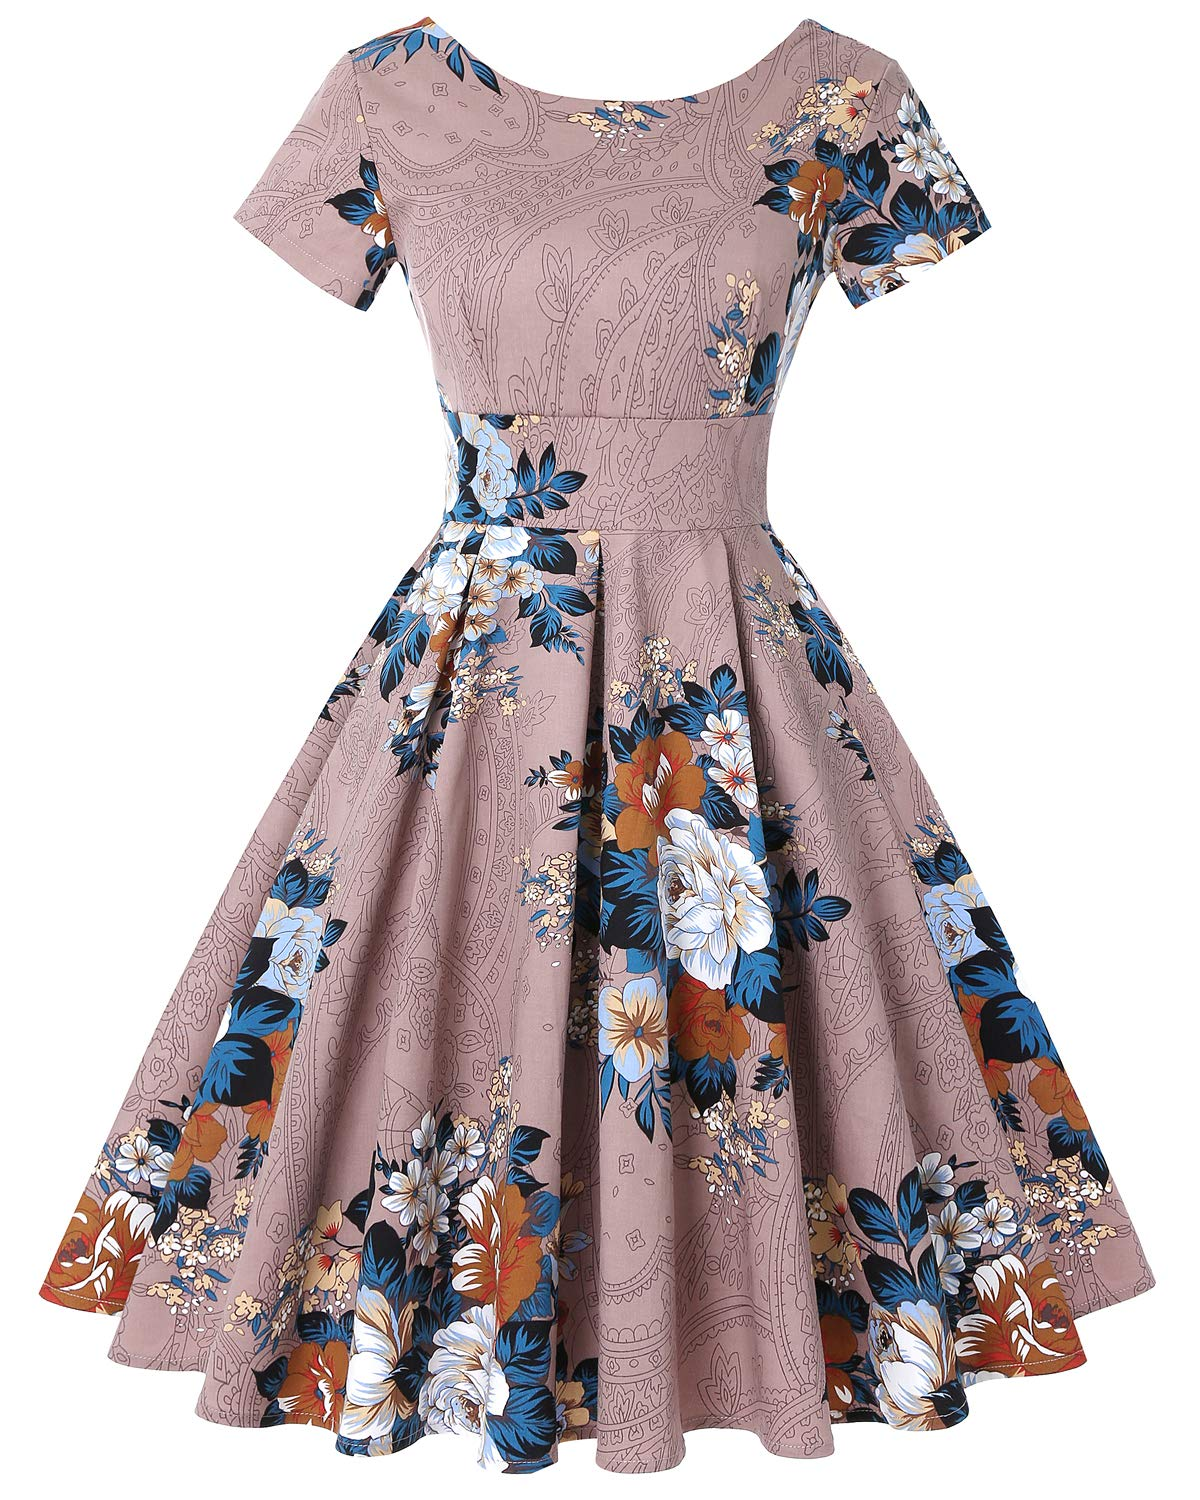 MINTLIMIT Womens 1950s Retro Vintage Cocktail Party Short Sleeve Swing Dress